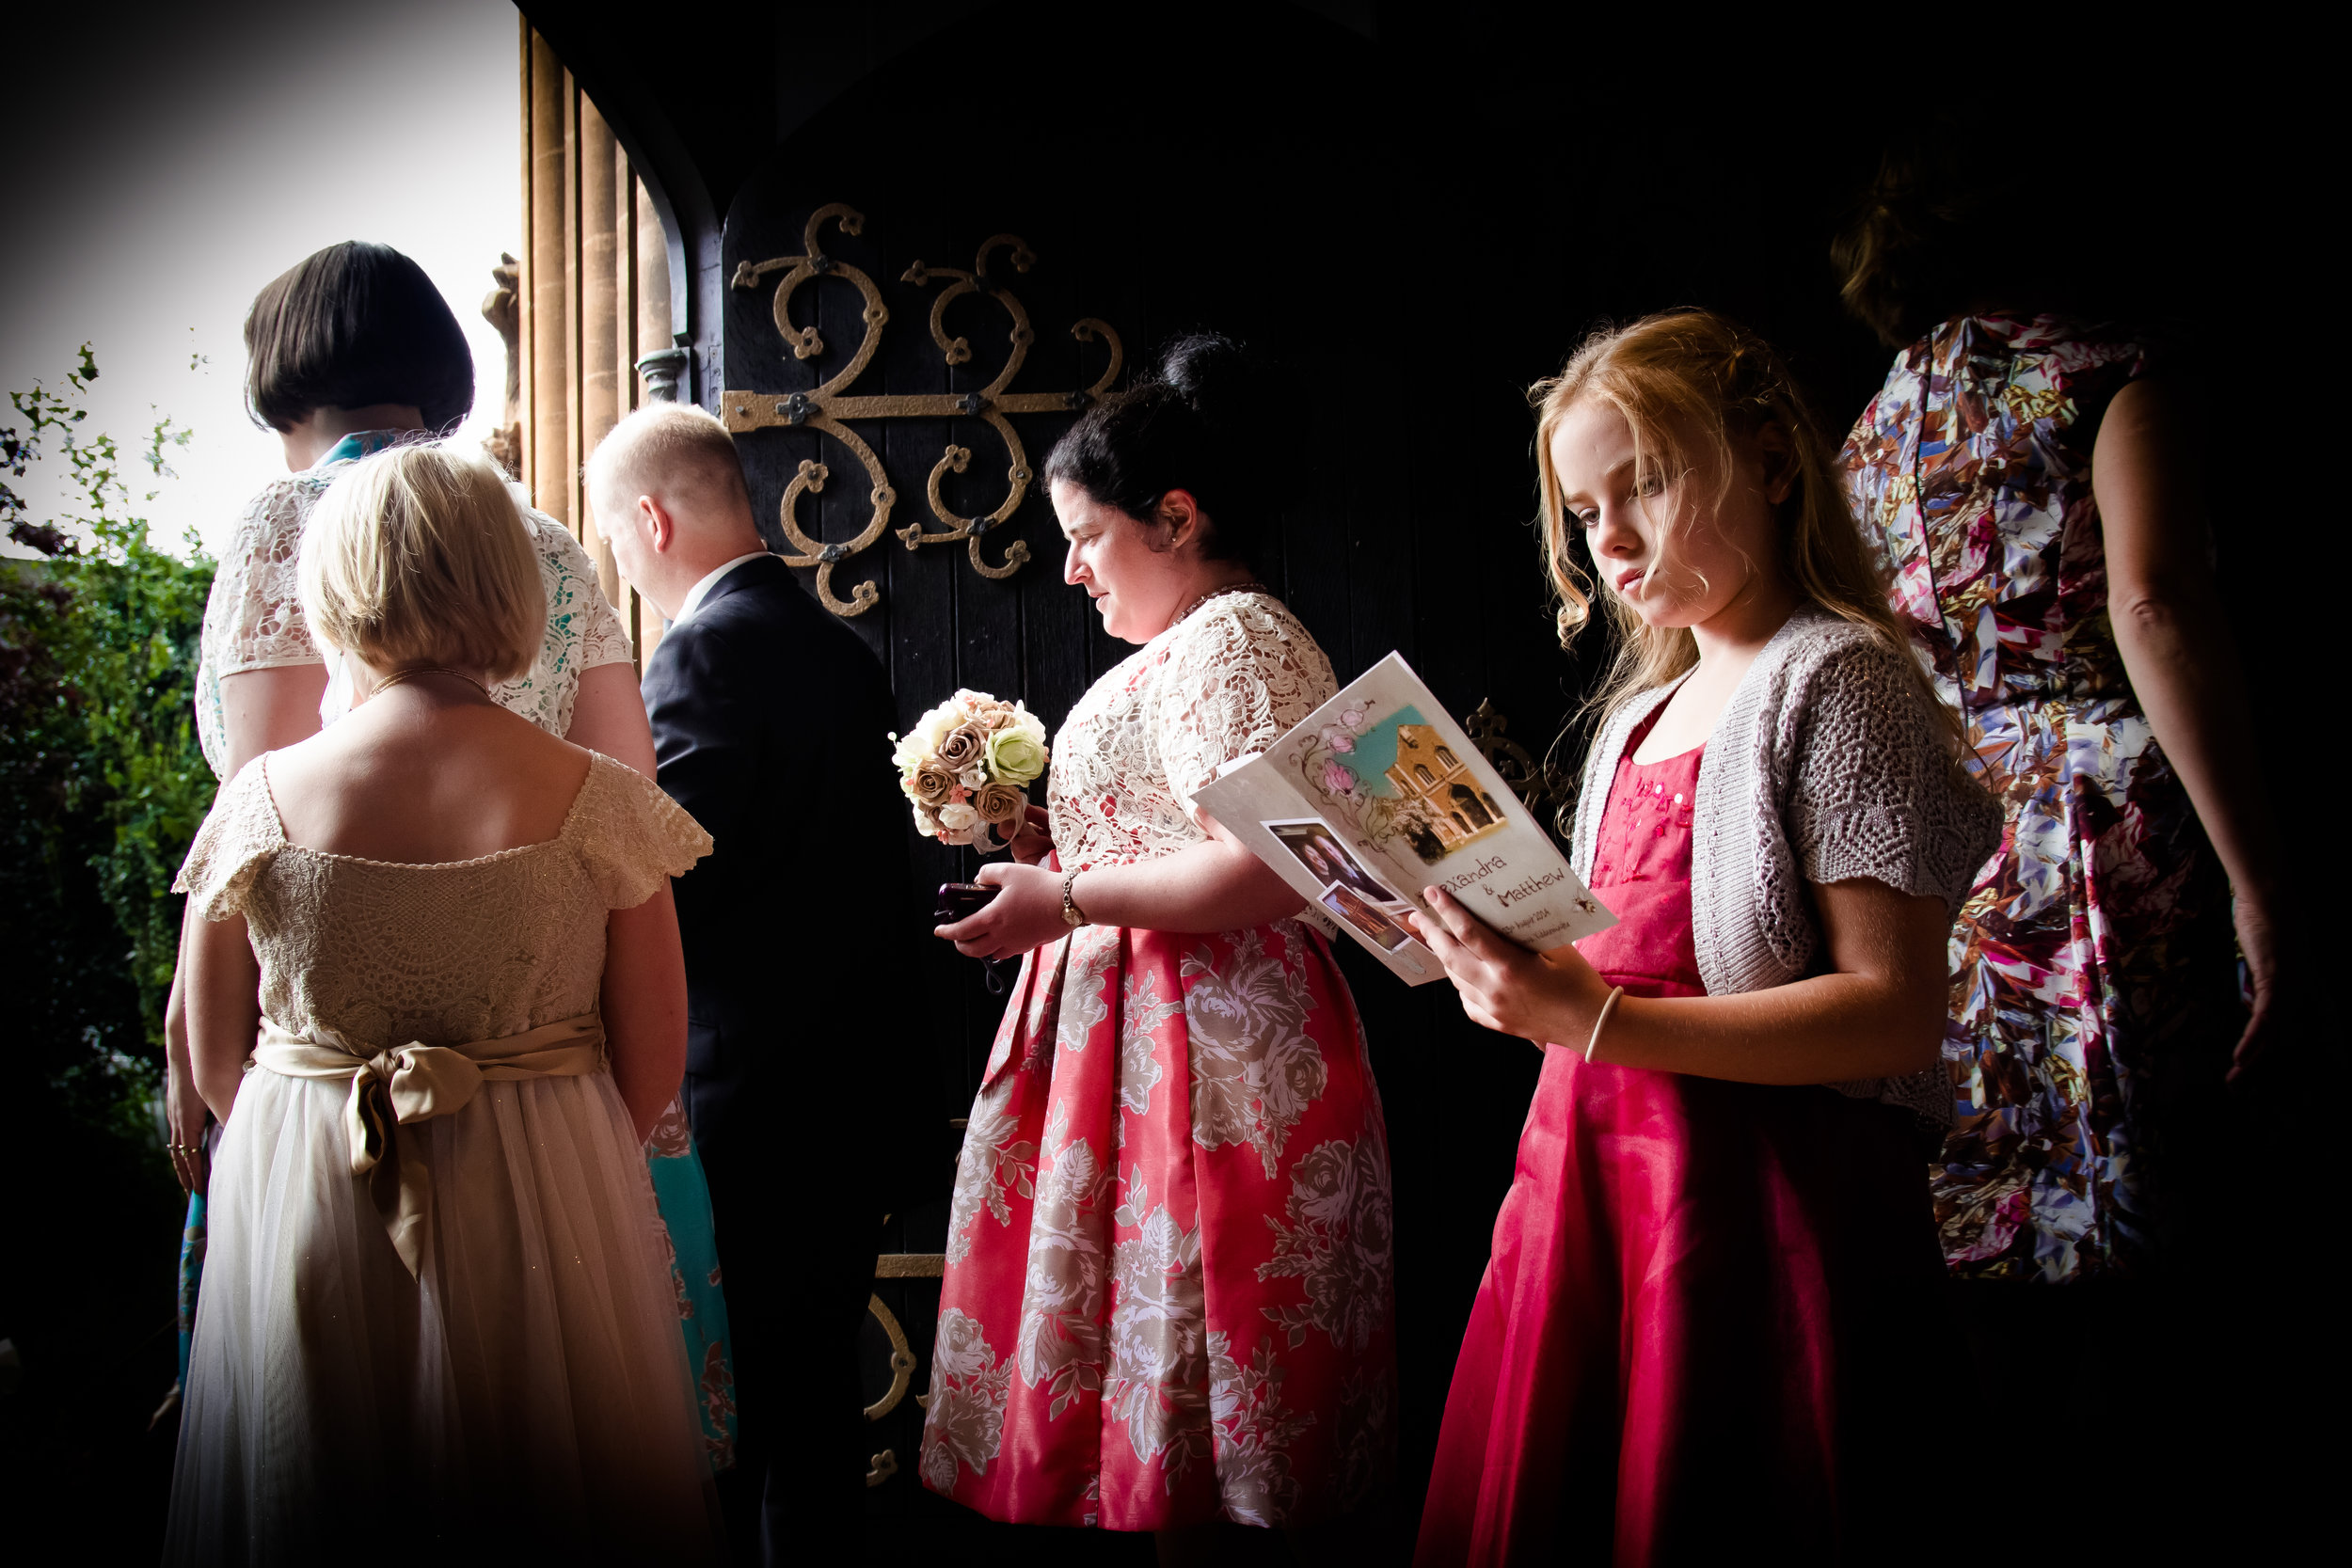 Celebrations & rites of passage - weddings, blessings, memorials/funerals, baby blessings, coming-of-age, and child dedications.